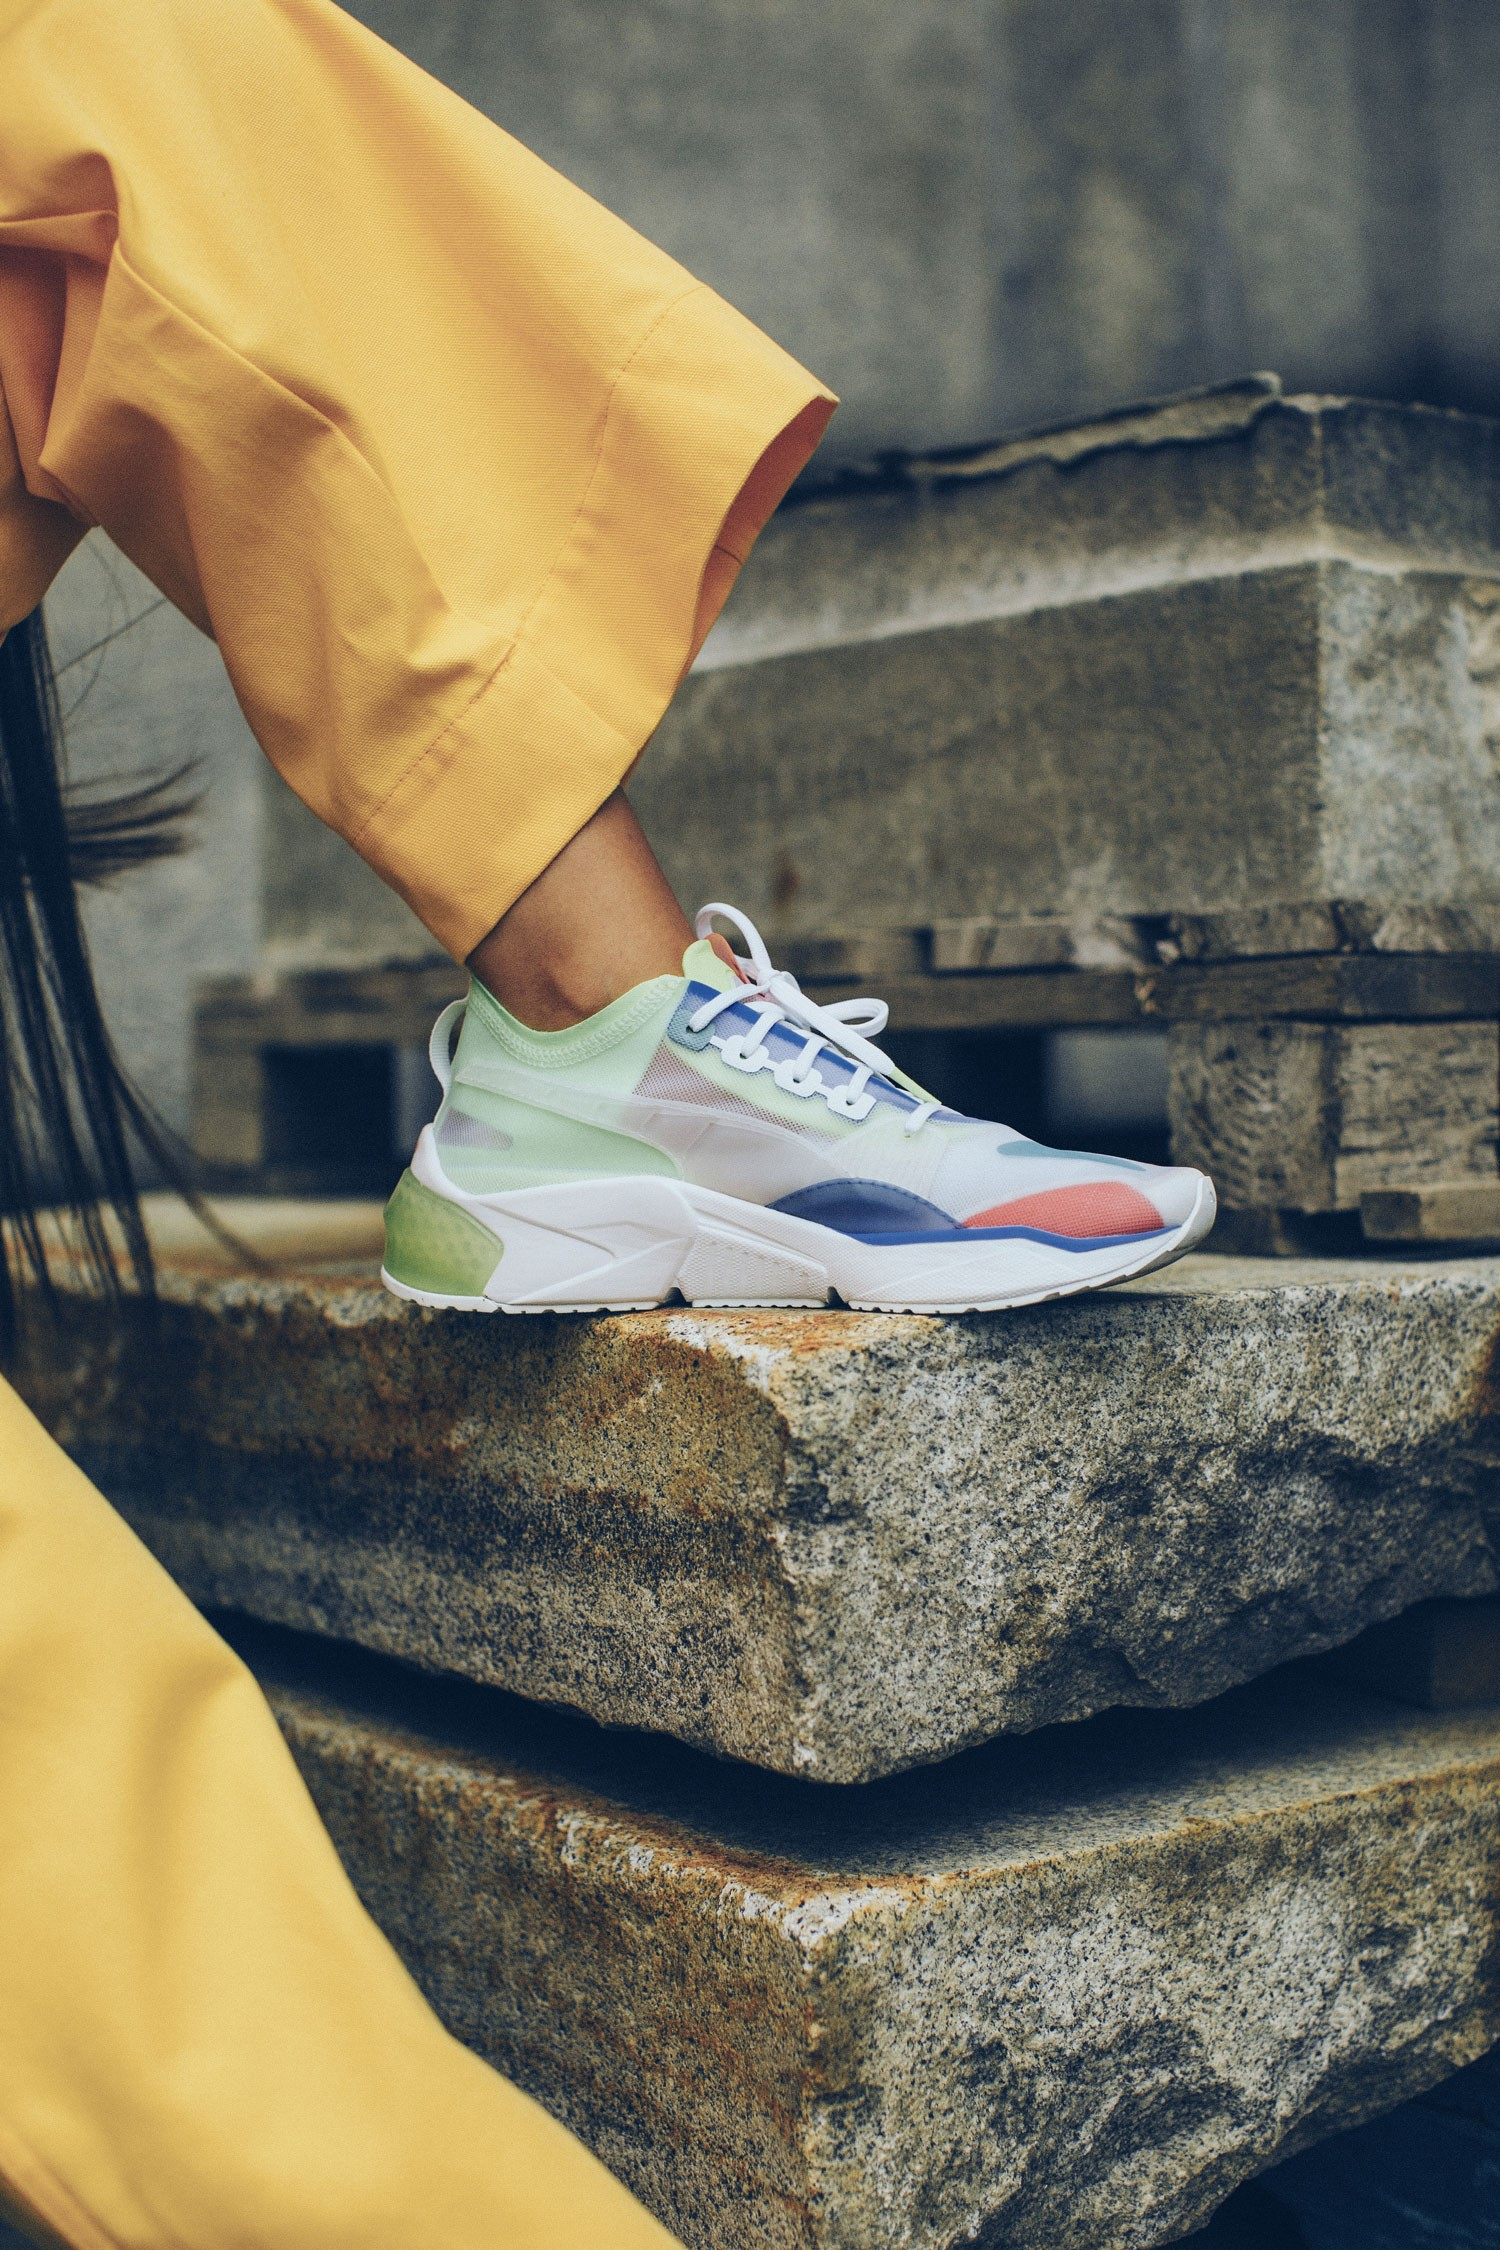 PUMA Releases the LQD CELL Optic In a